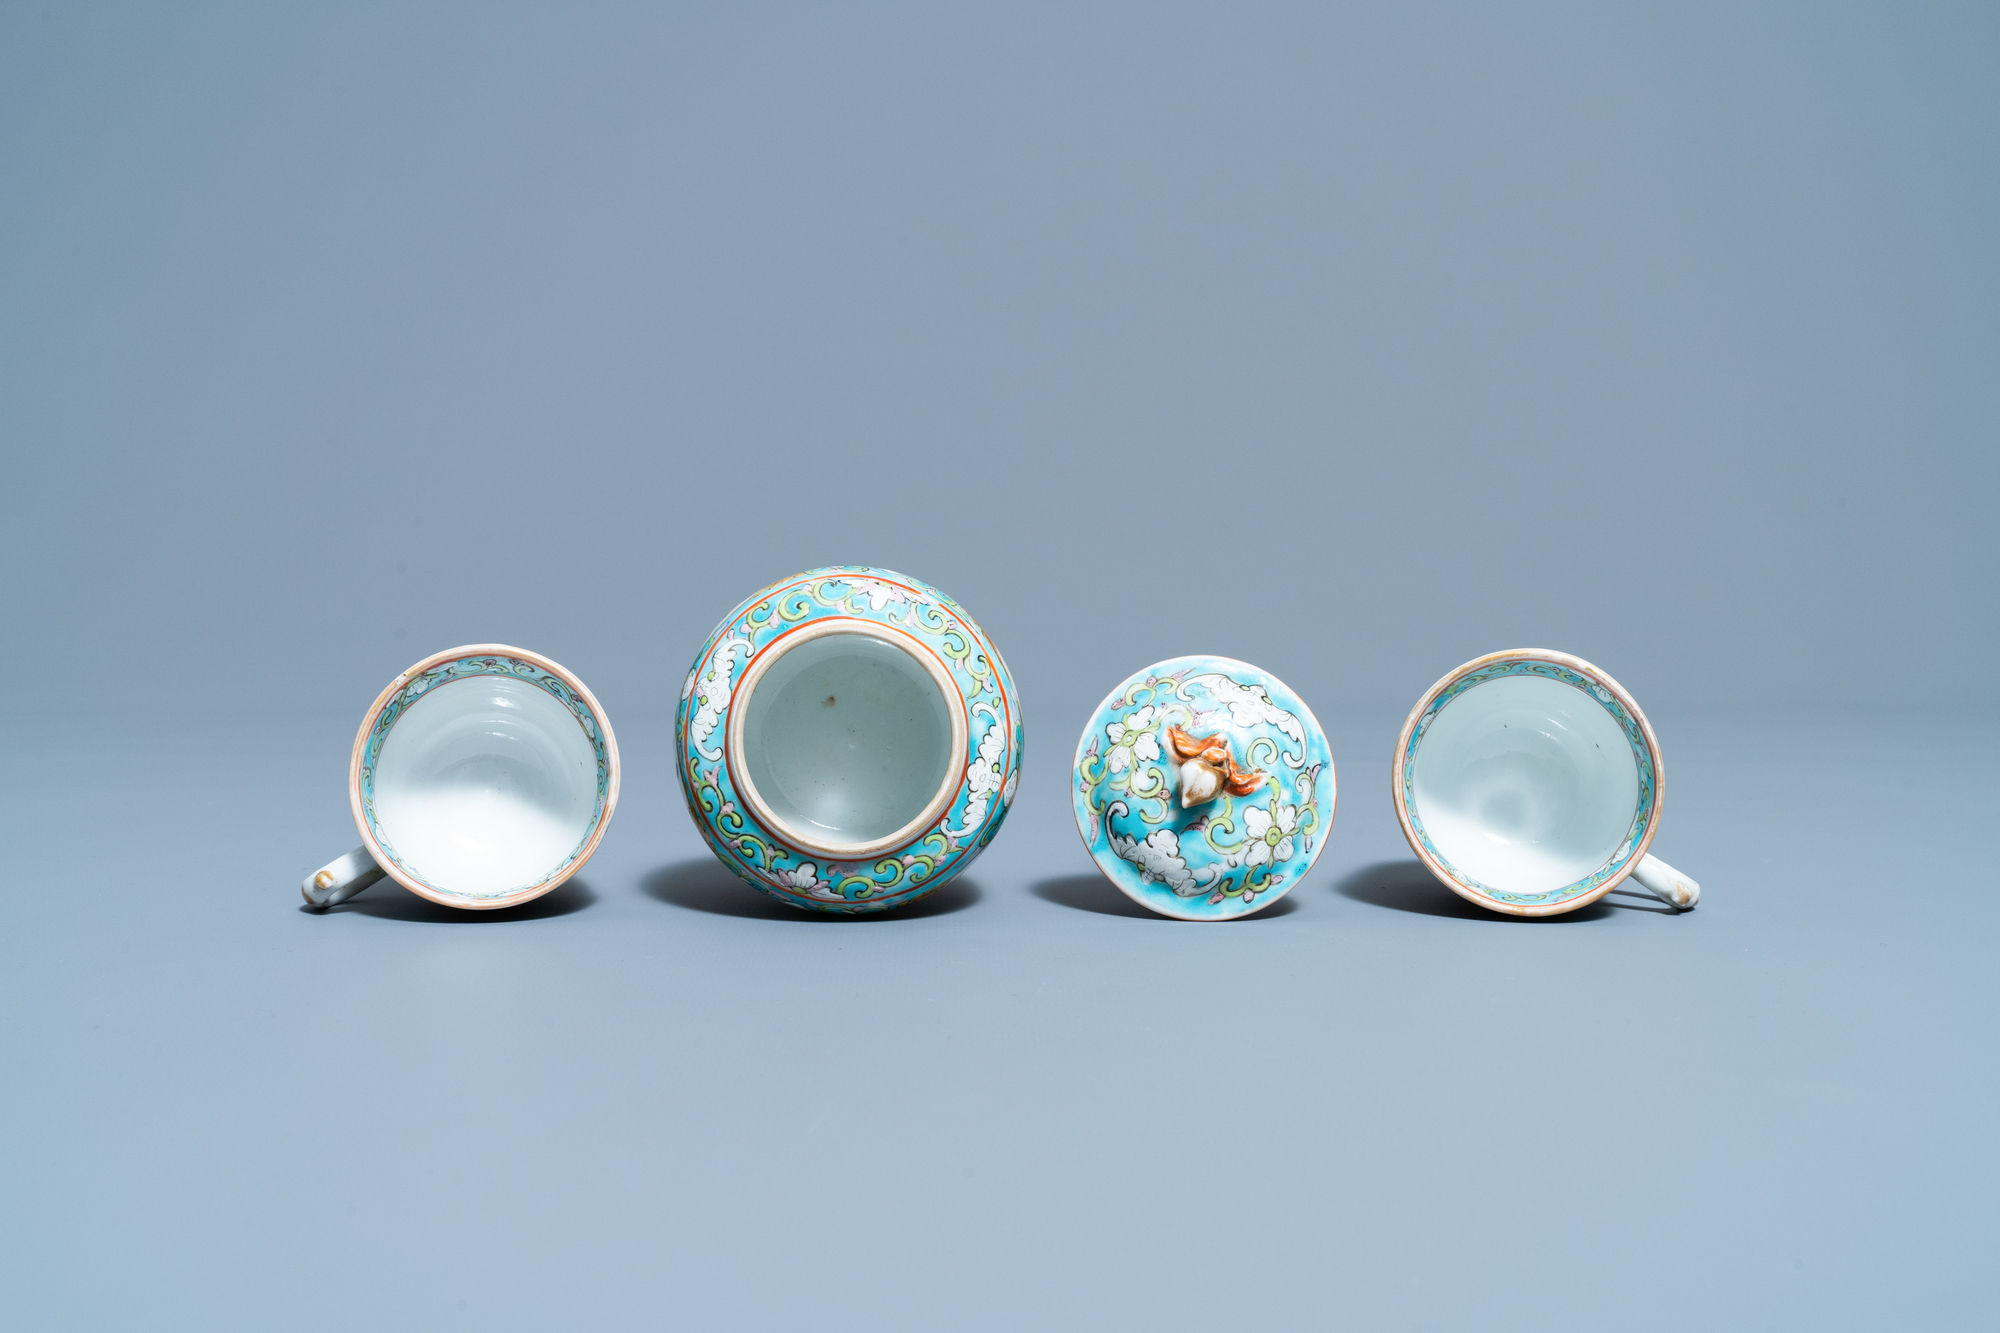 A Chinese famille rose 'tete-a-tete' tea service on tray, 19th C. - Image 9 of 10